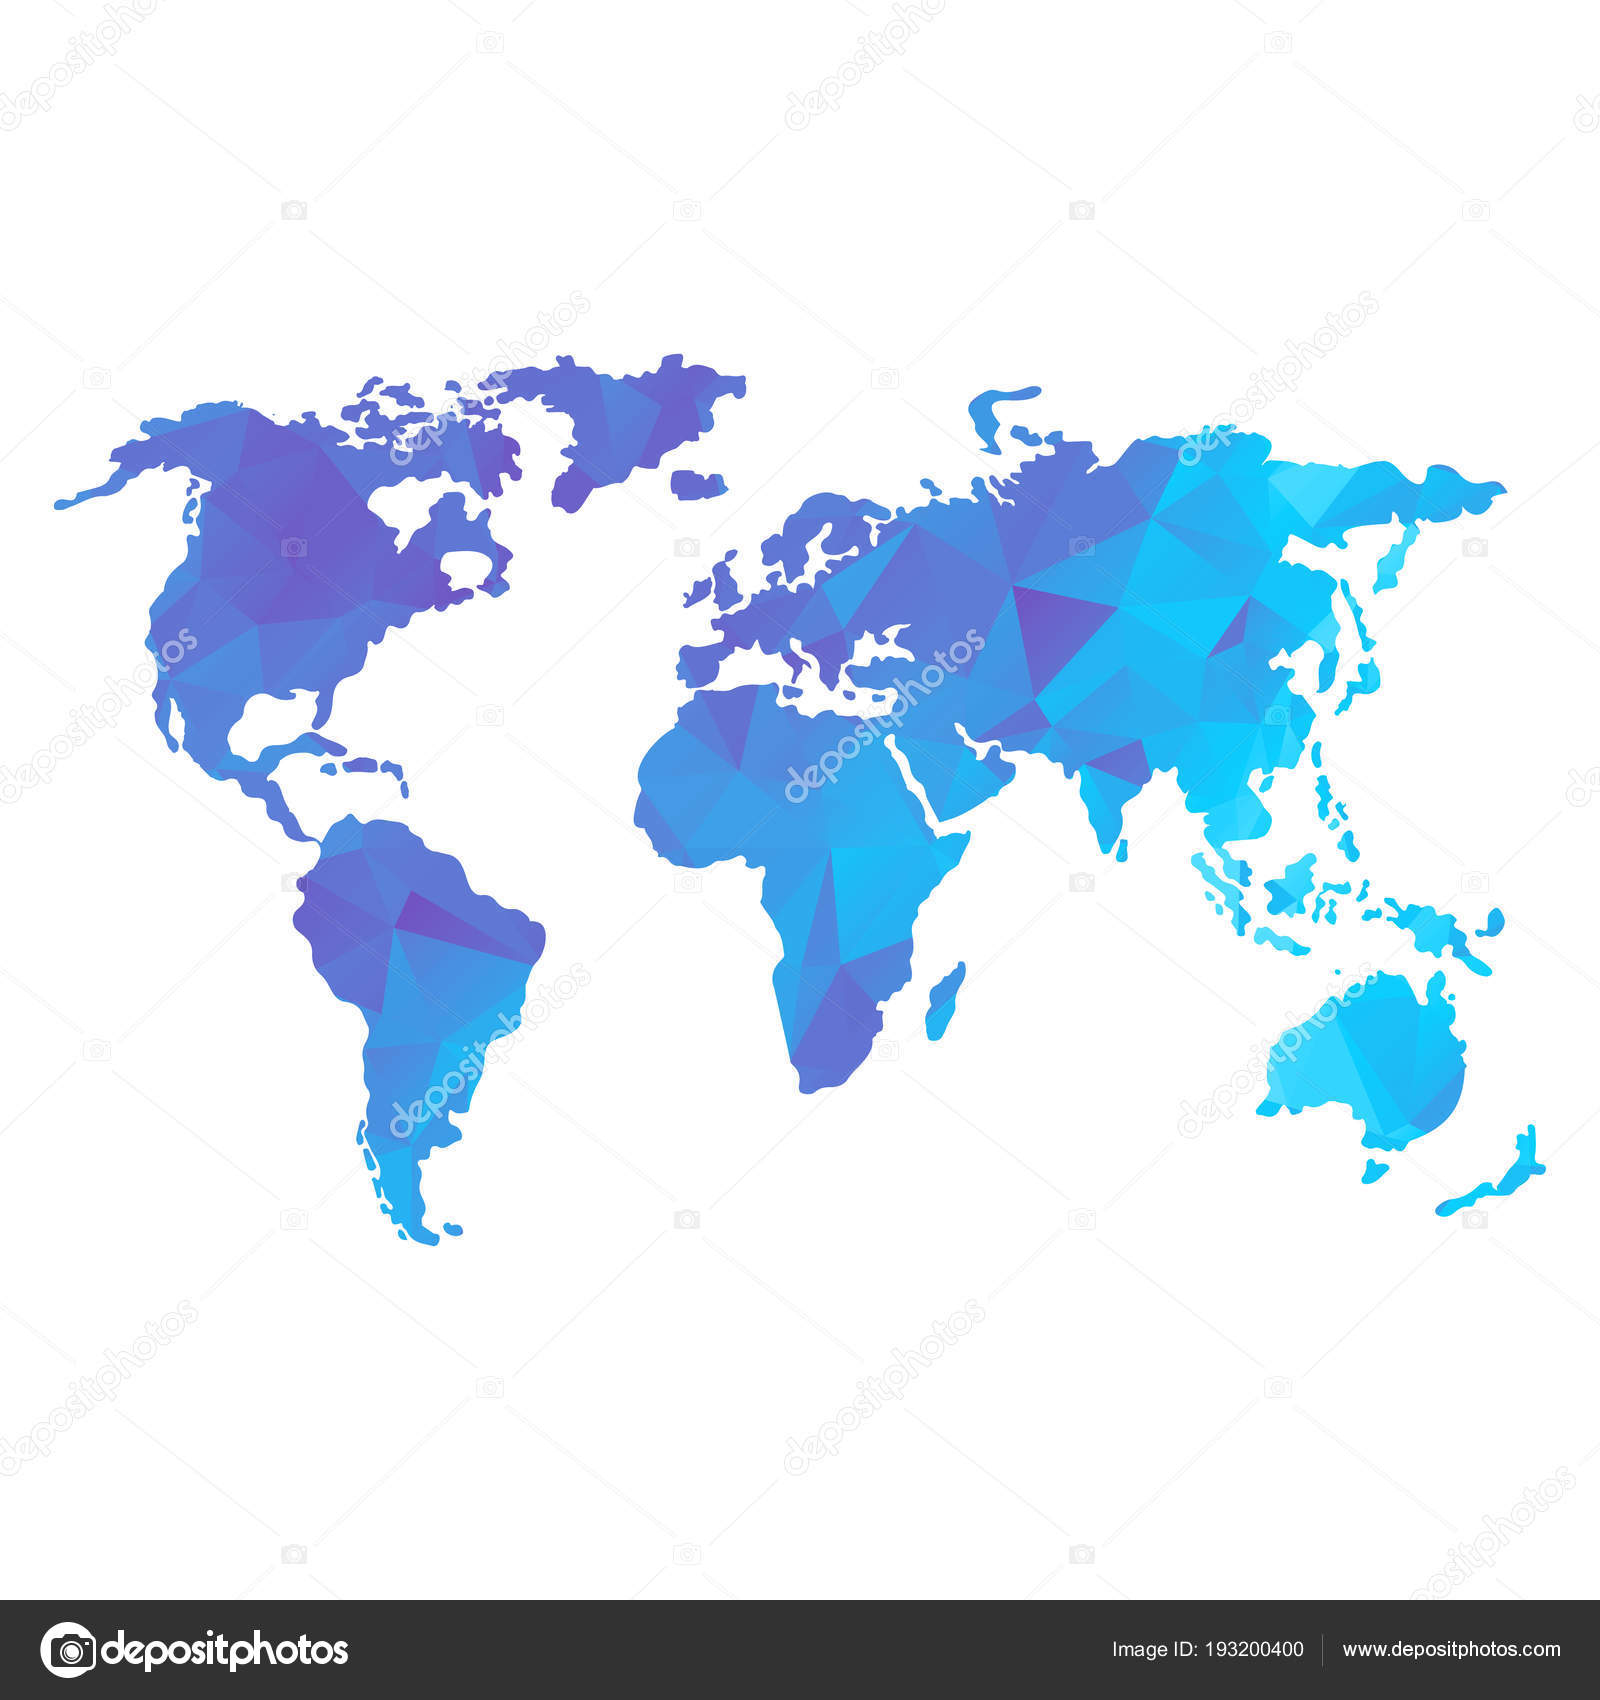 Low poly global world map stock vector quarta 193200400 low poly global world map stock vector gumiabroncs Image collections